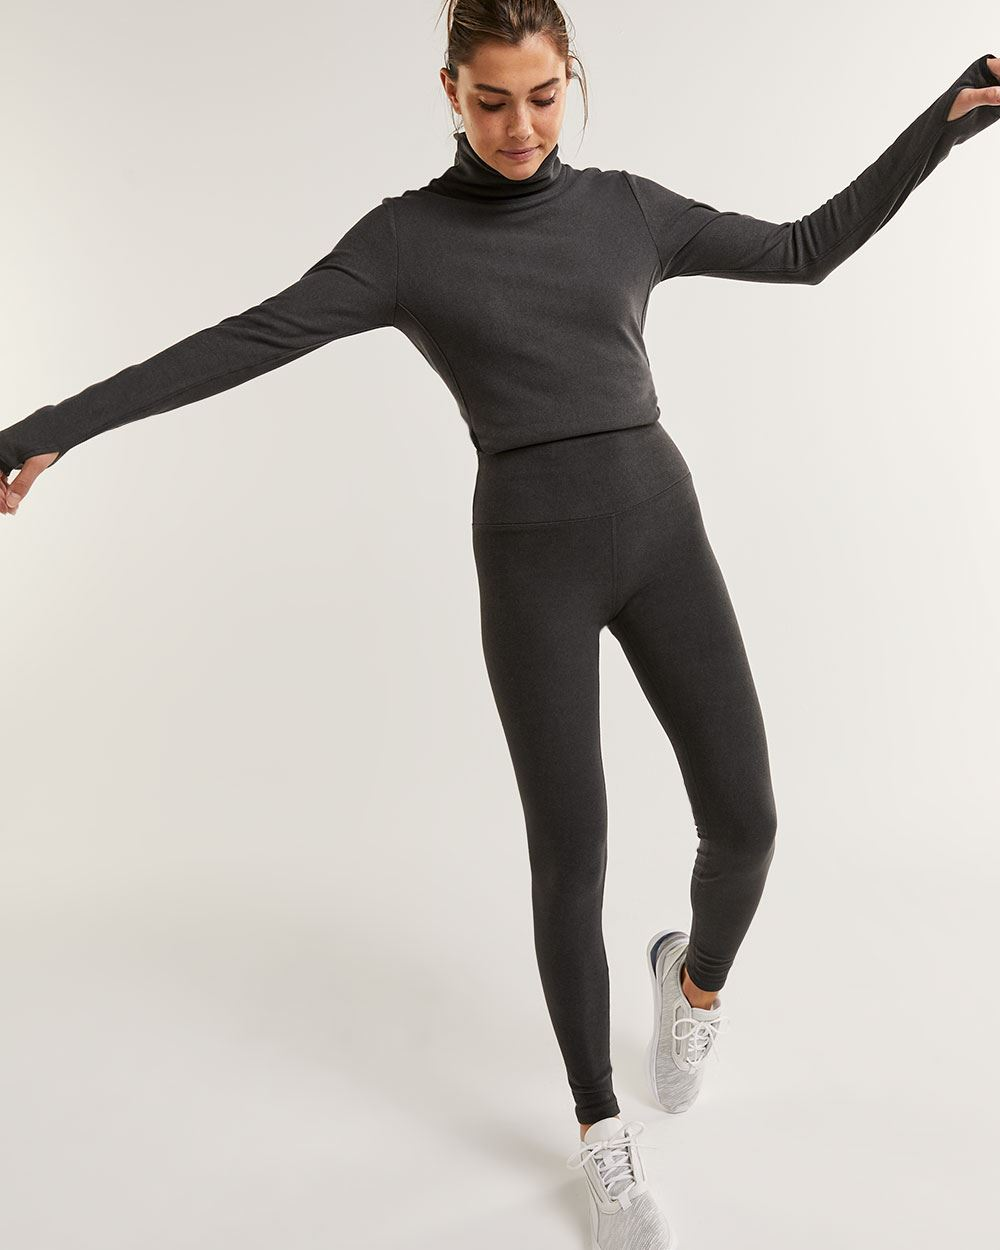 Polar Fleece Leggings Hyba